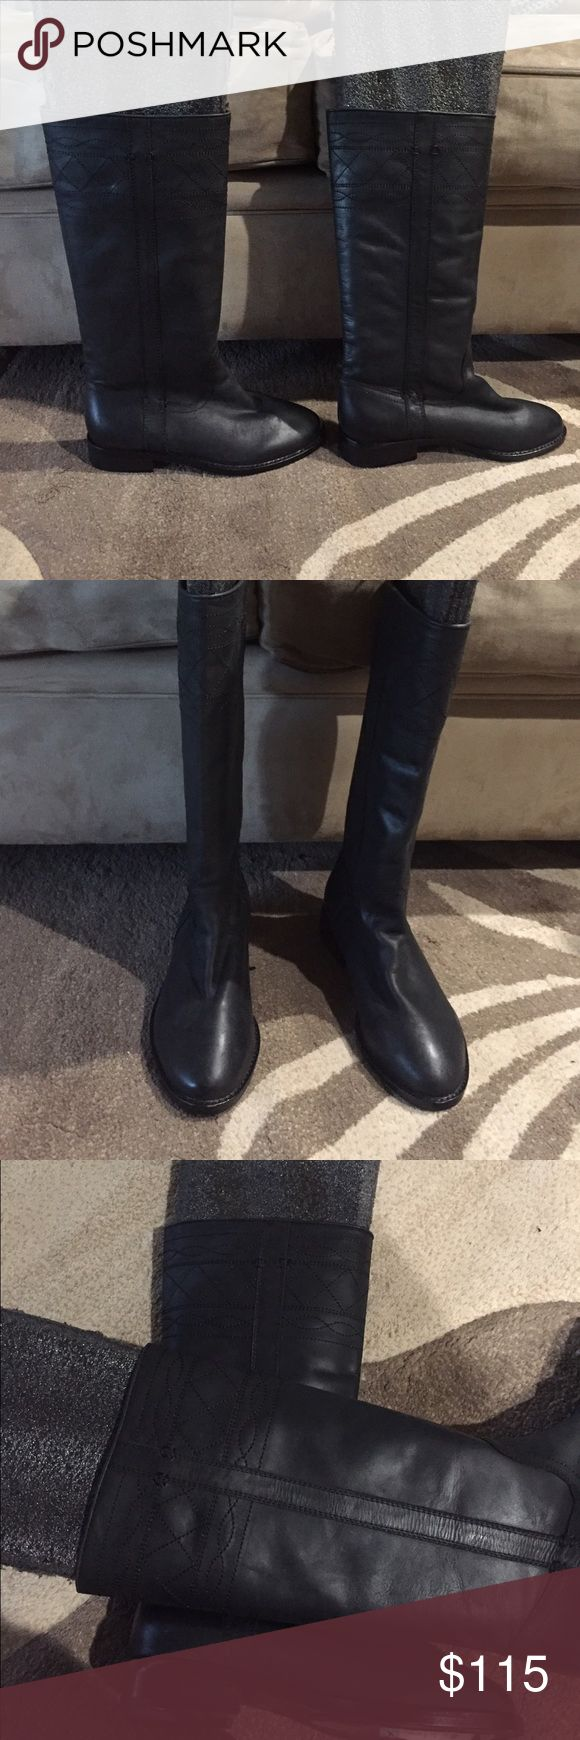 Joie leather black boots New without box Joie Black Boots. They are pull on style. No zipper. Joie Shoes